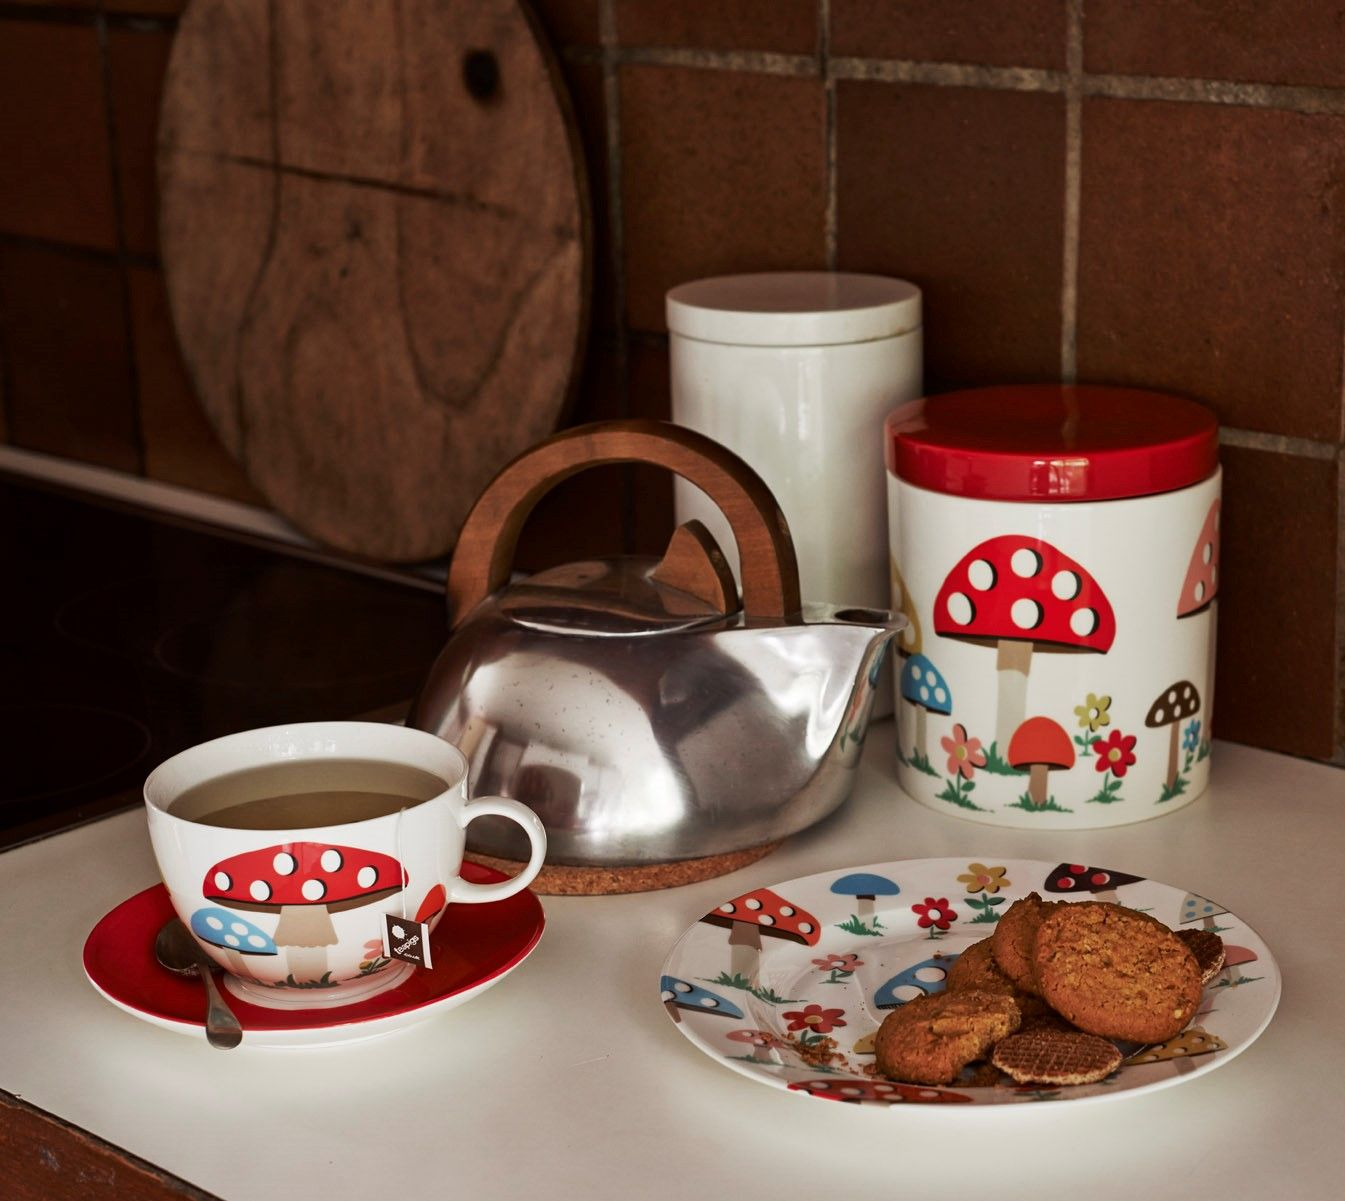 Mushroom china is our latest favourite brunch table eye candy. The biggest cuppa you've ever seen, a toast plate and novelty toadstool mushroom salt & pepper pots. #cathkidston